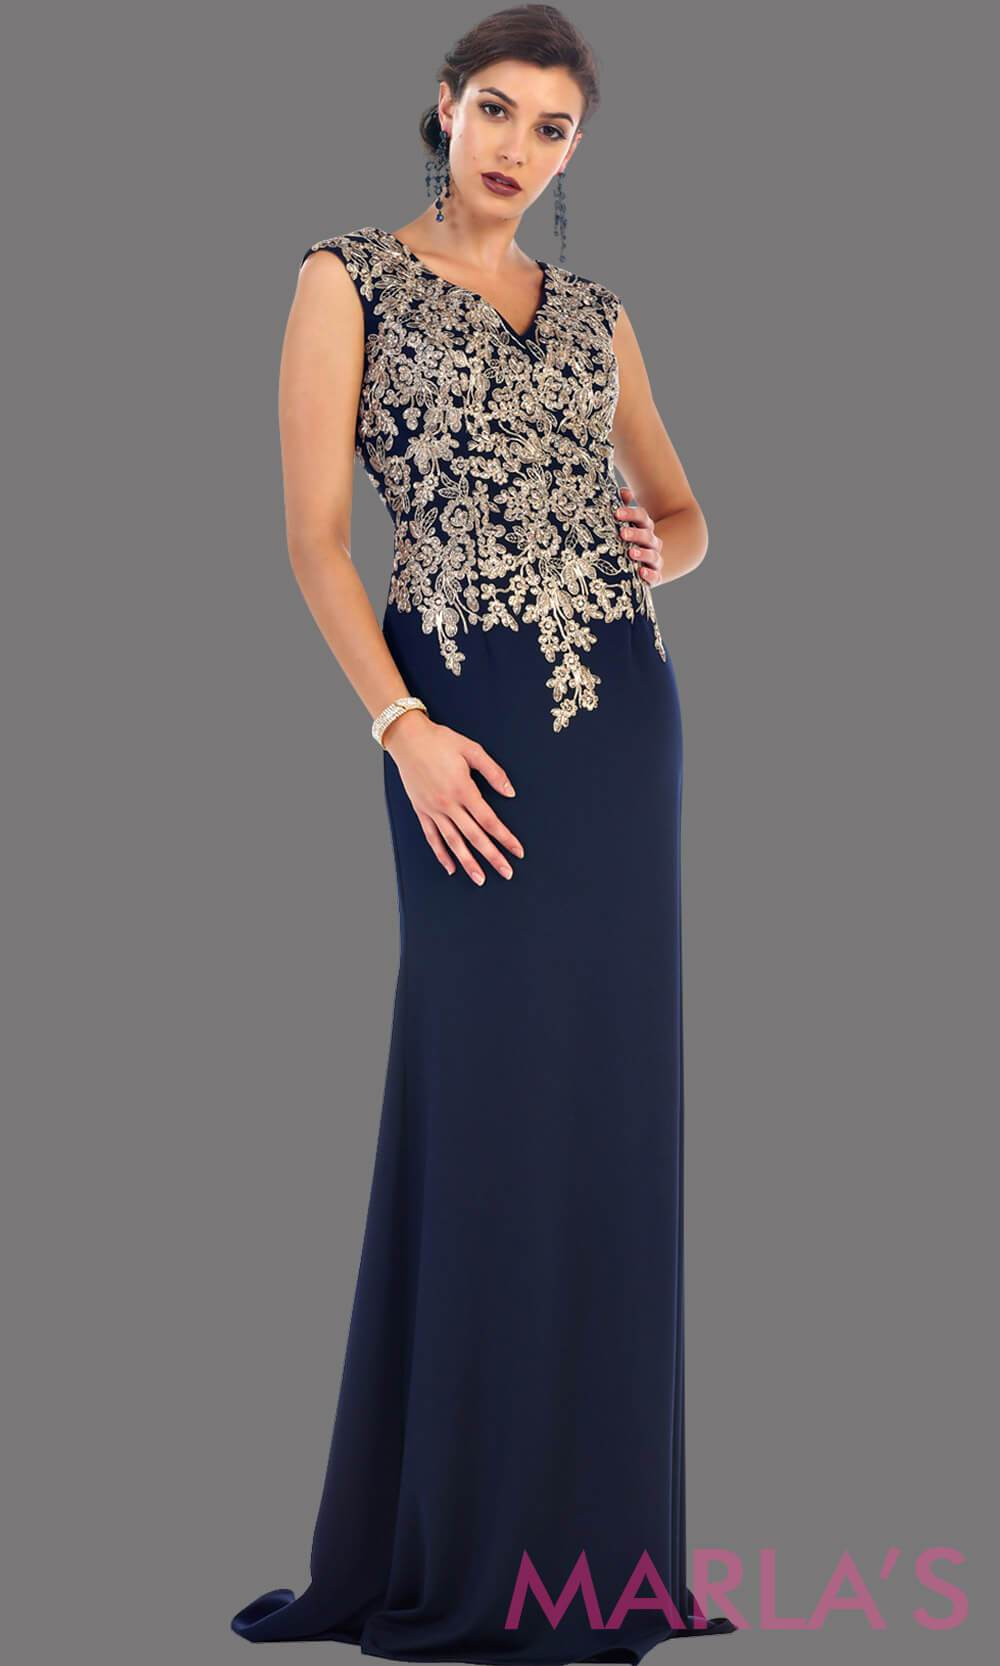 Long navy party dress with gold lace. This is a beautiful plus size dress that is perfect as a modest dress, dark blue prom dress, wedding guest dress, or a conservative party dress